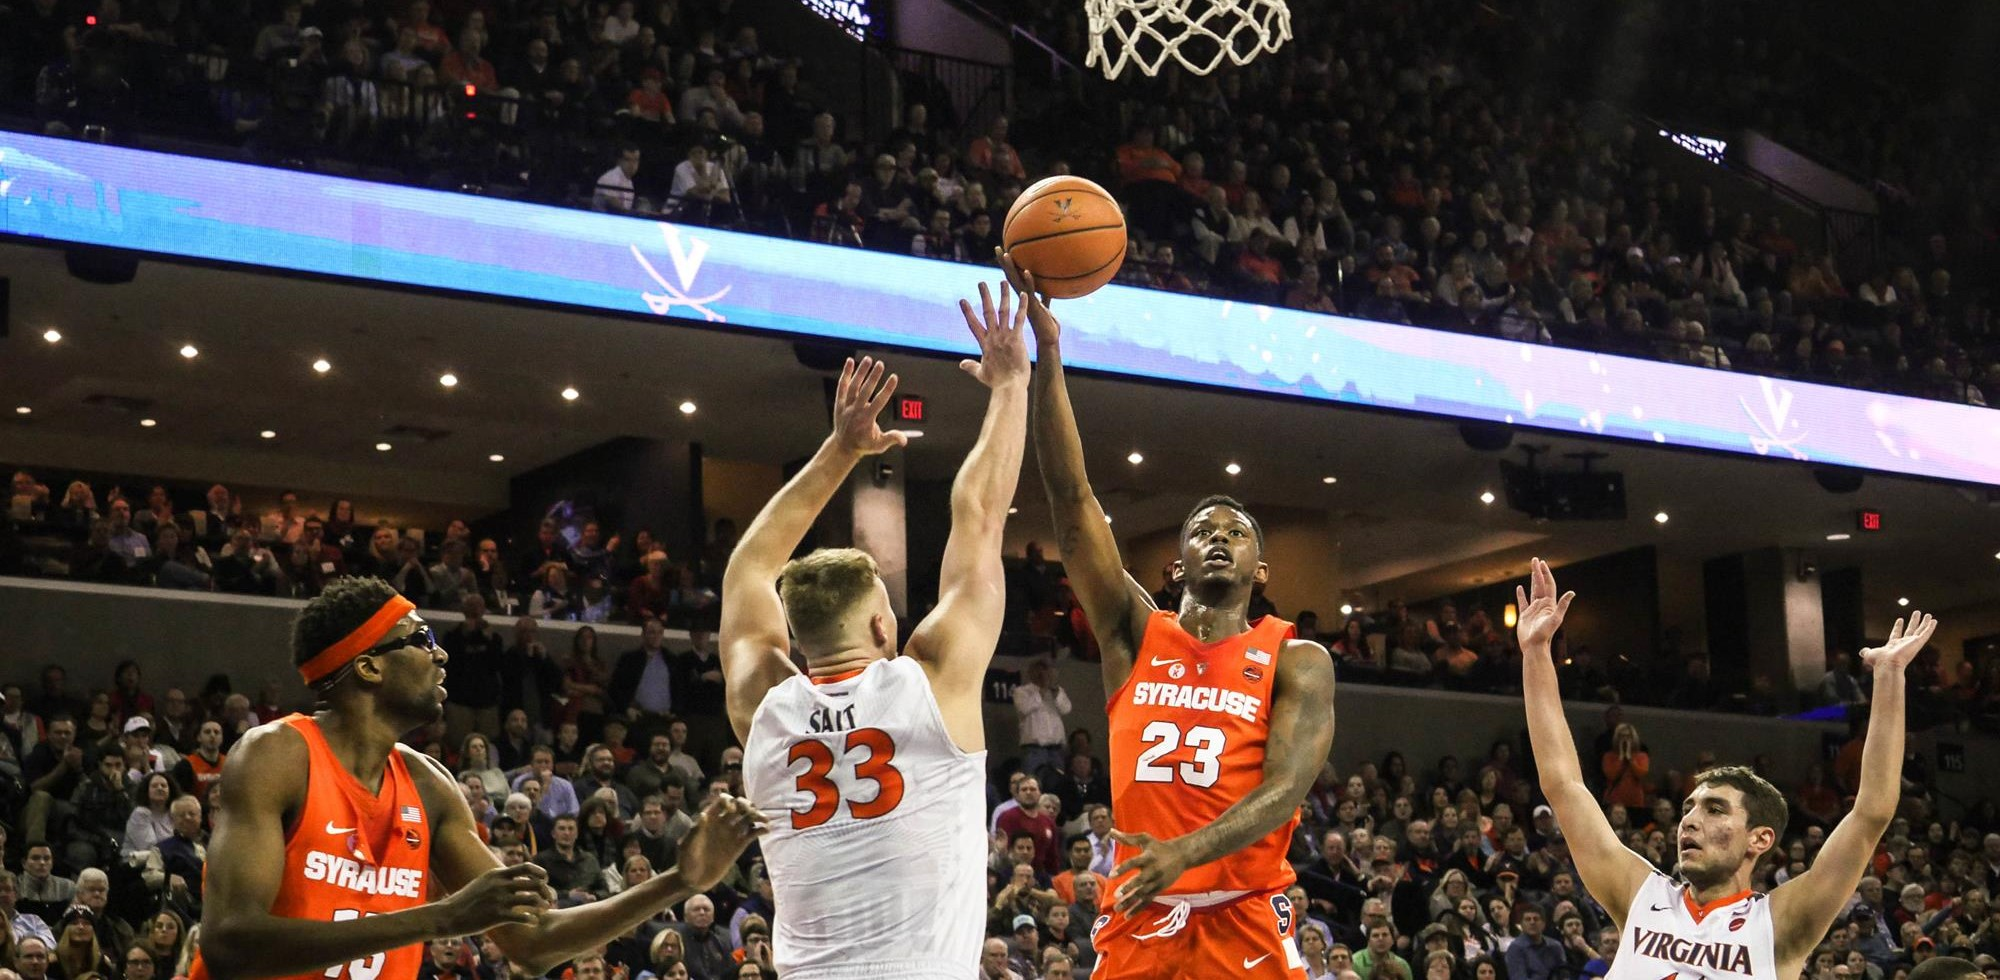 Syracuse Comeback Cut Short At 3 3 Virginia Syracuse University